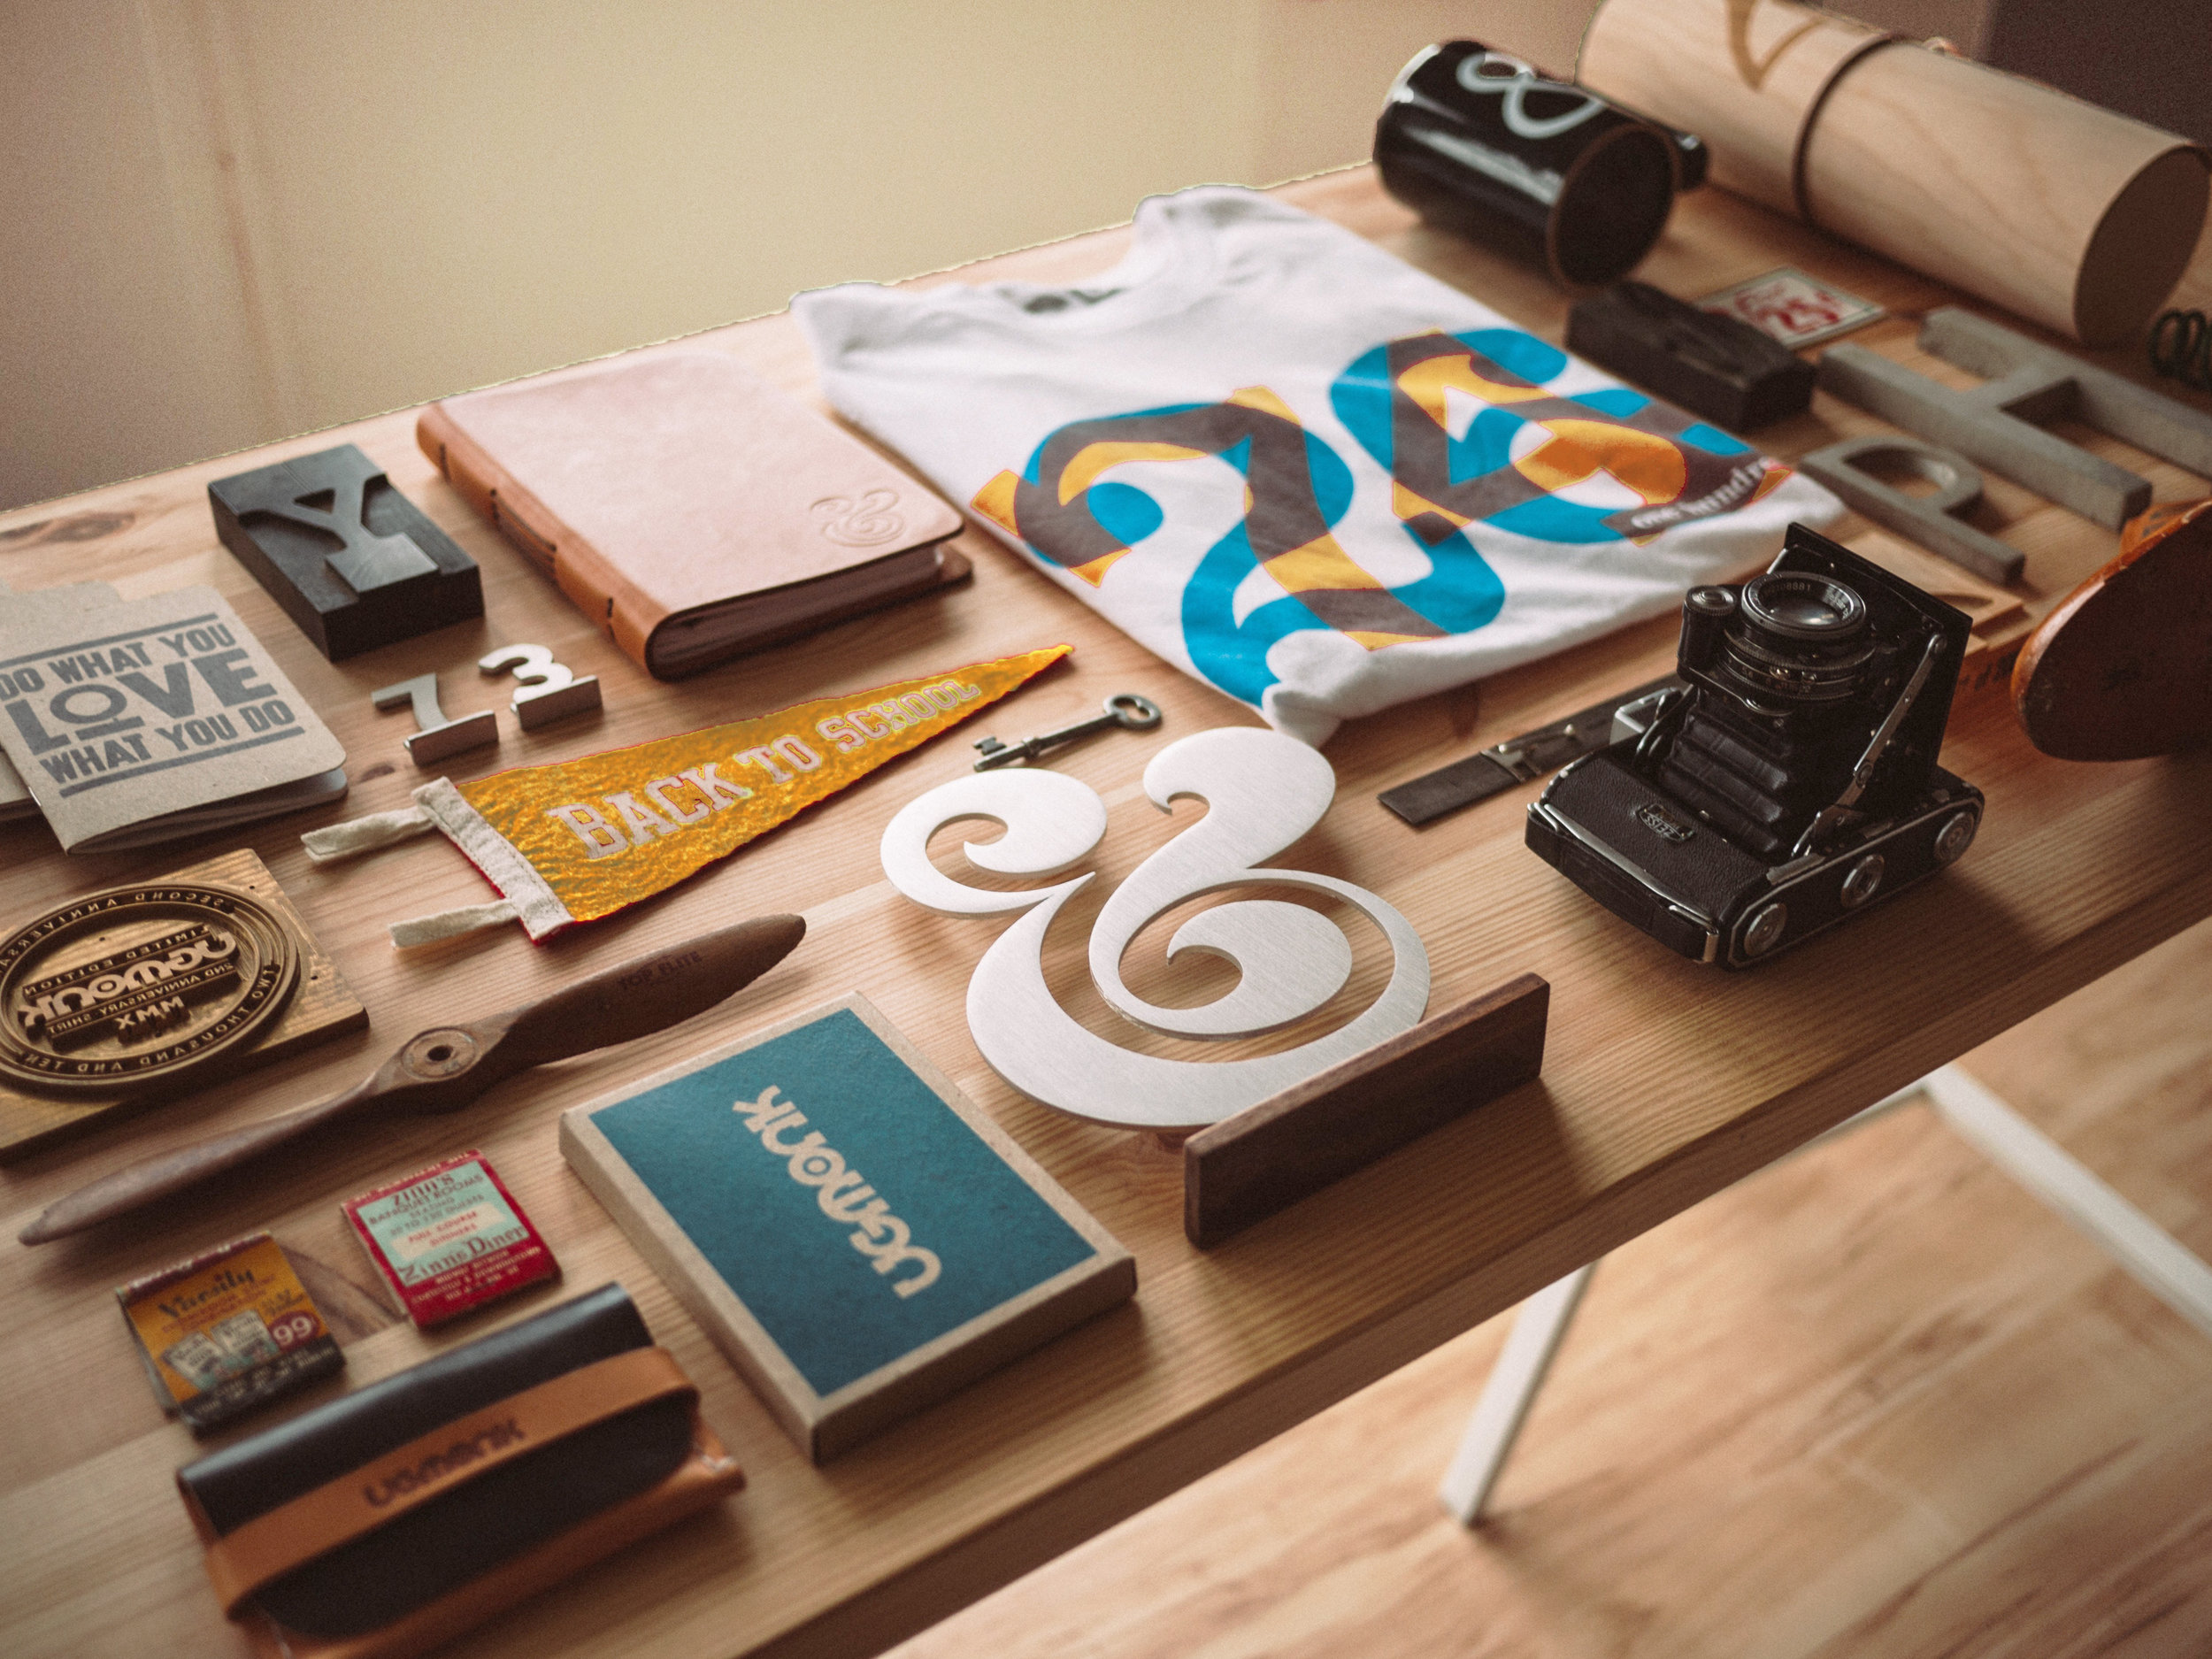 Branding materials laid out on wooden table